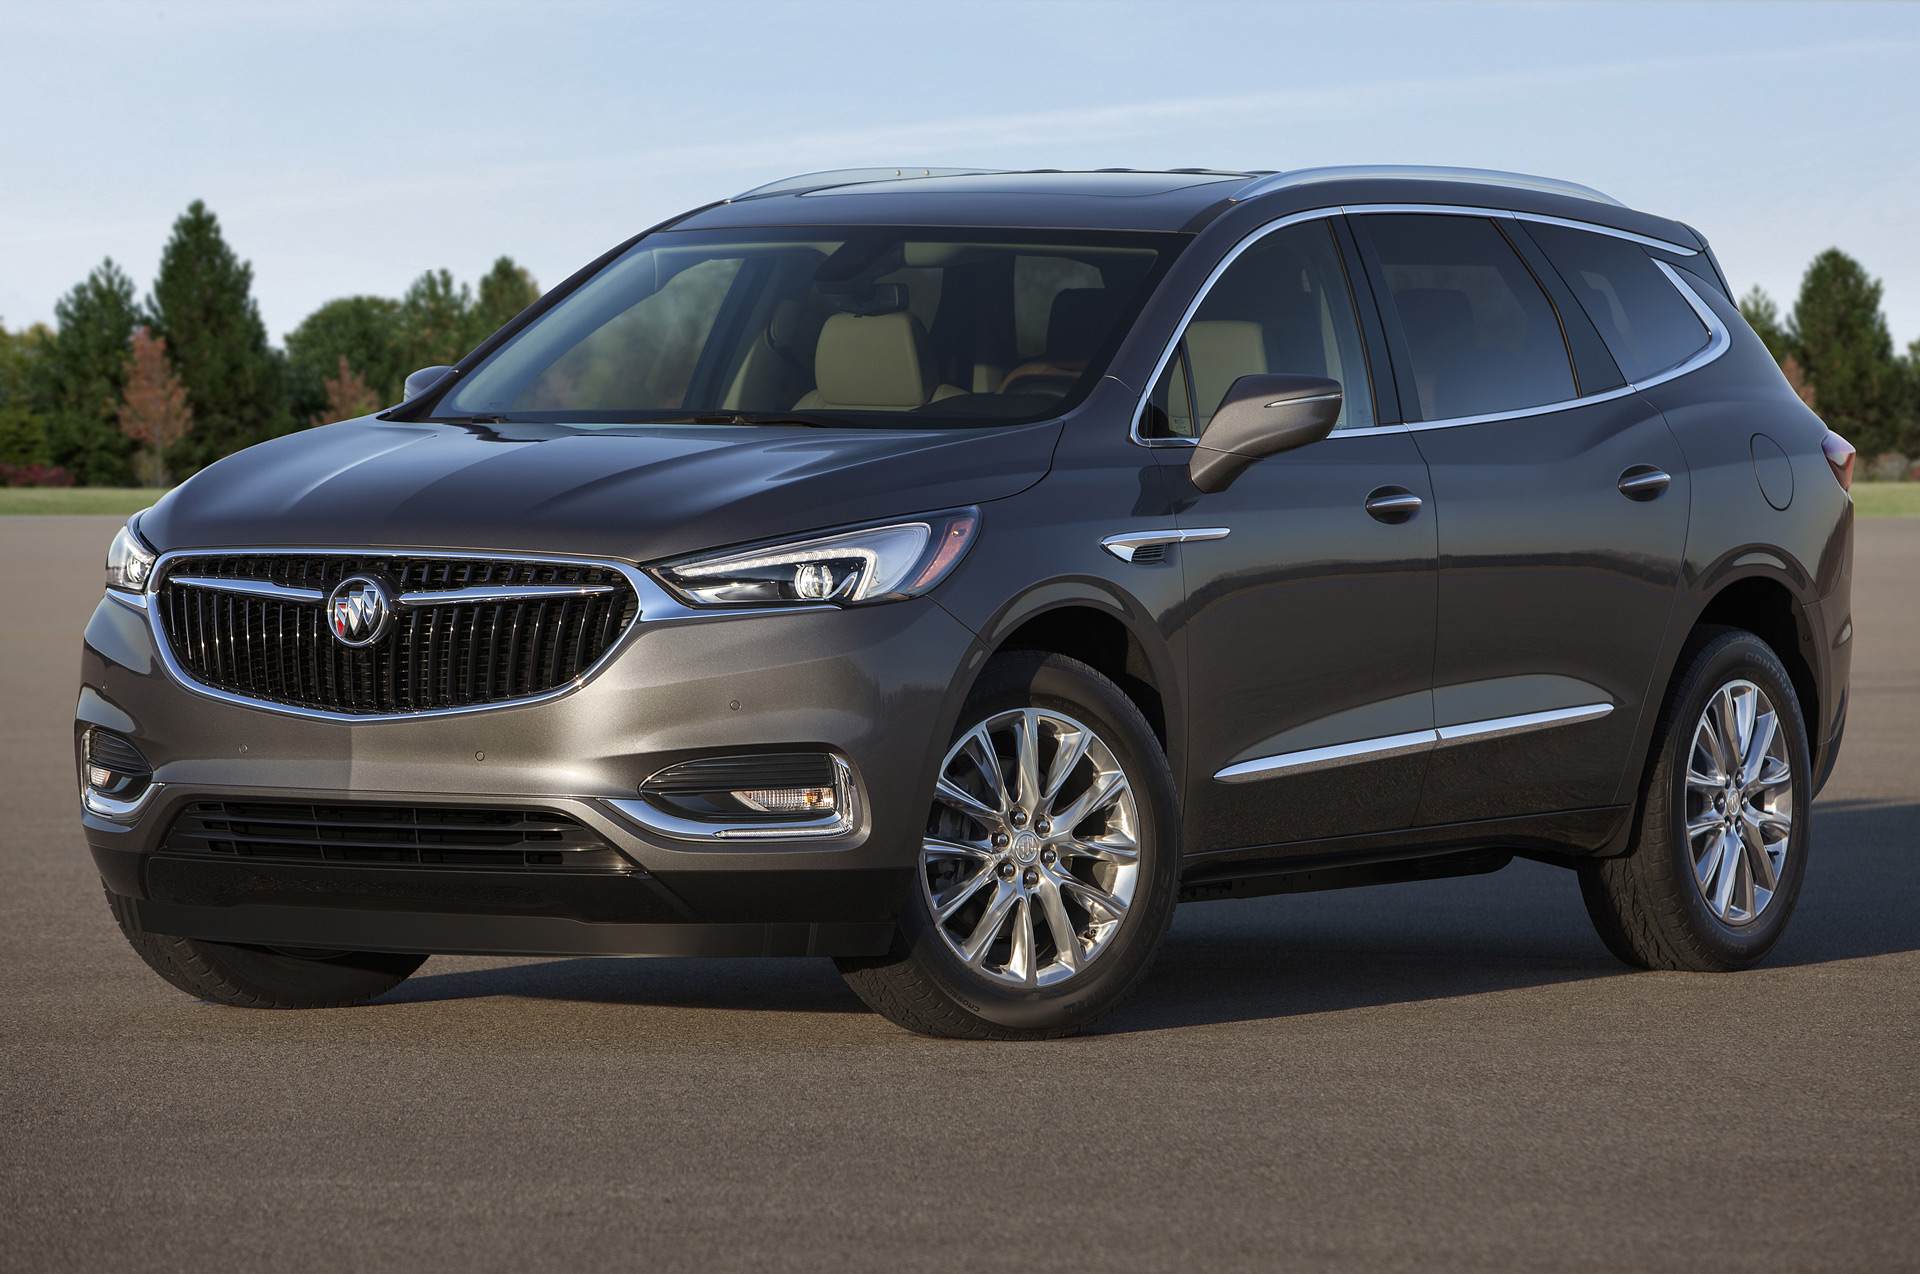 Mercedes Kansas City >> 2018 Buick Enclave Review, Ratings, Specs, Prices, and Photos - The Car Connection